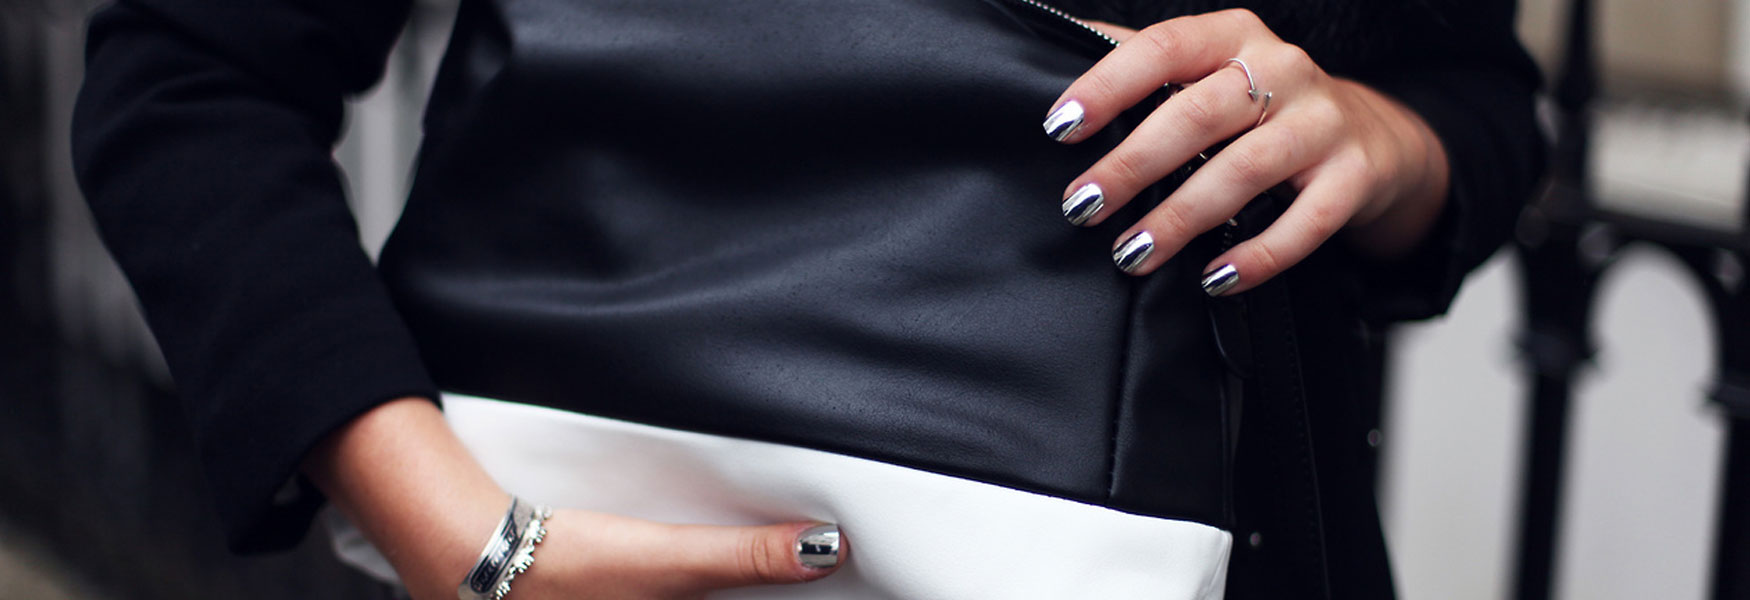 Get the Look: Liquid Metal | Le Chateau blog